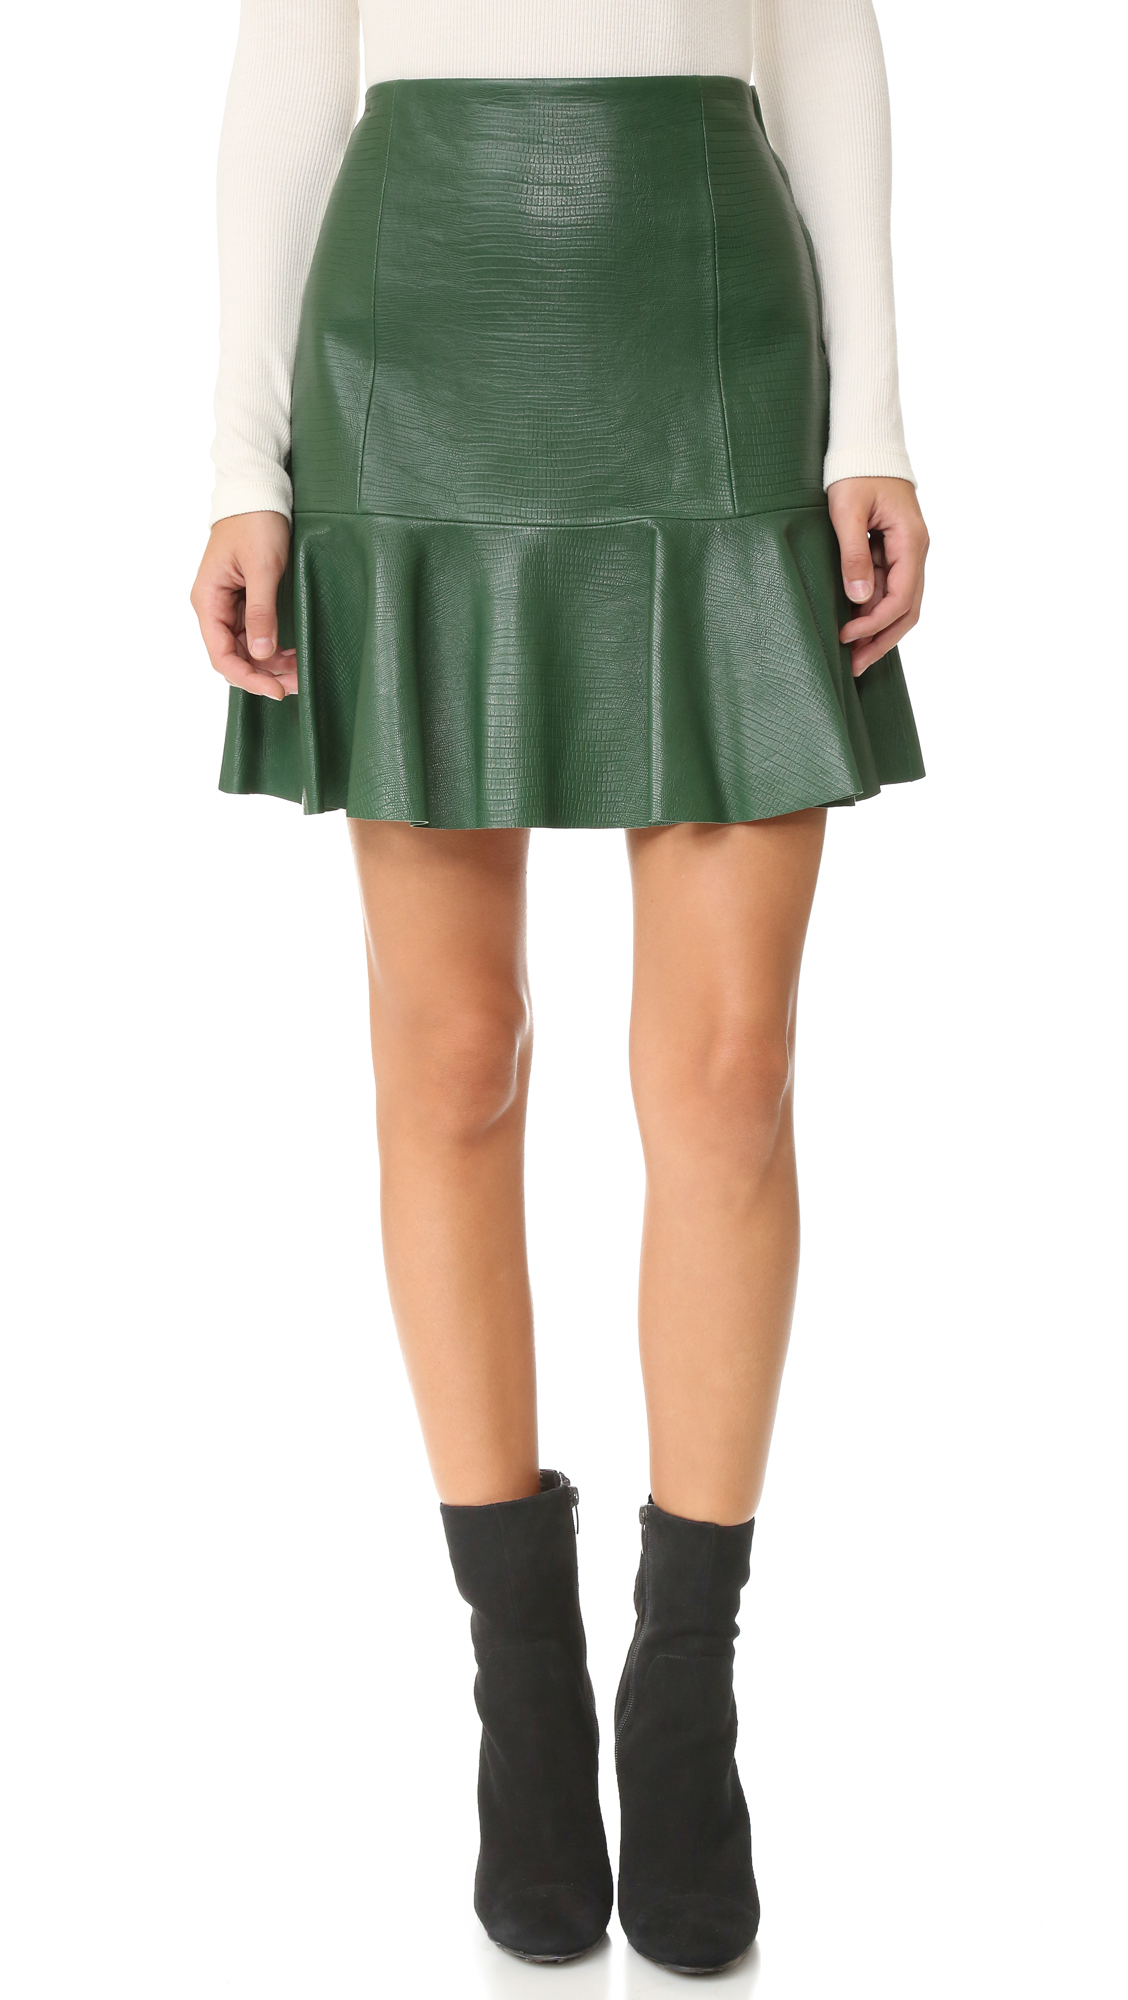 Embossed reptile scales bring exotic edge to this leather Rebecca Taylor miniskirt. The flounced, laser cut hem adds a flirty finish. Side zip. Lined. Fabric: Embossed leather. Shell: 100% lambskin. Lining: 100% polyester. Leather clean. Imported, China. Measurements